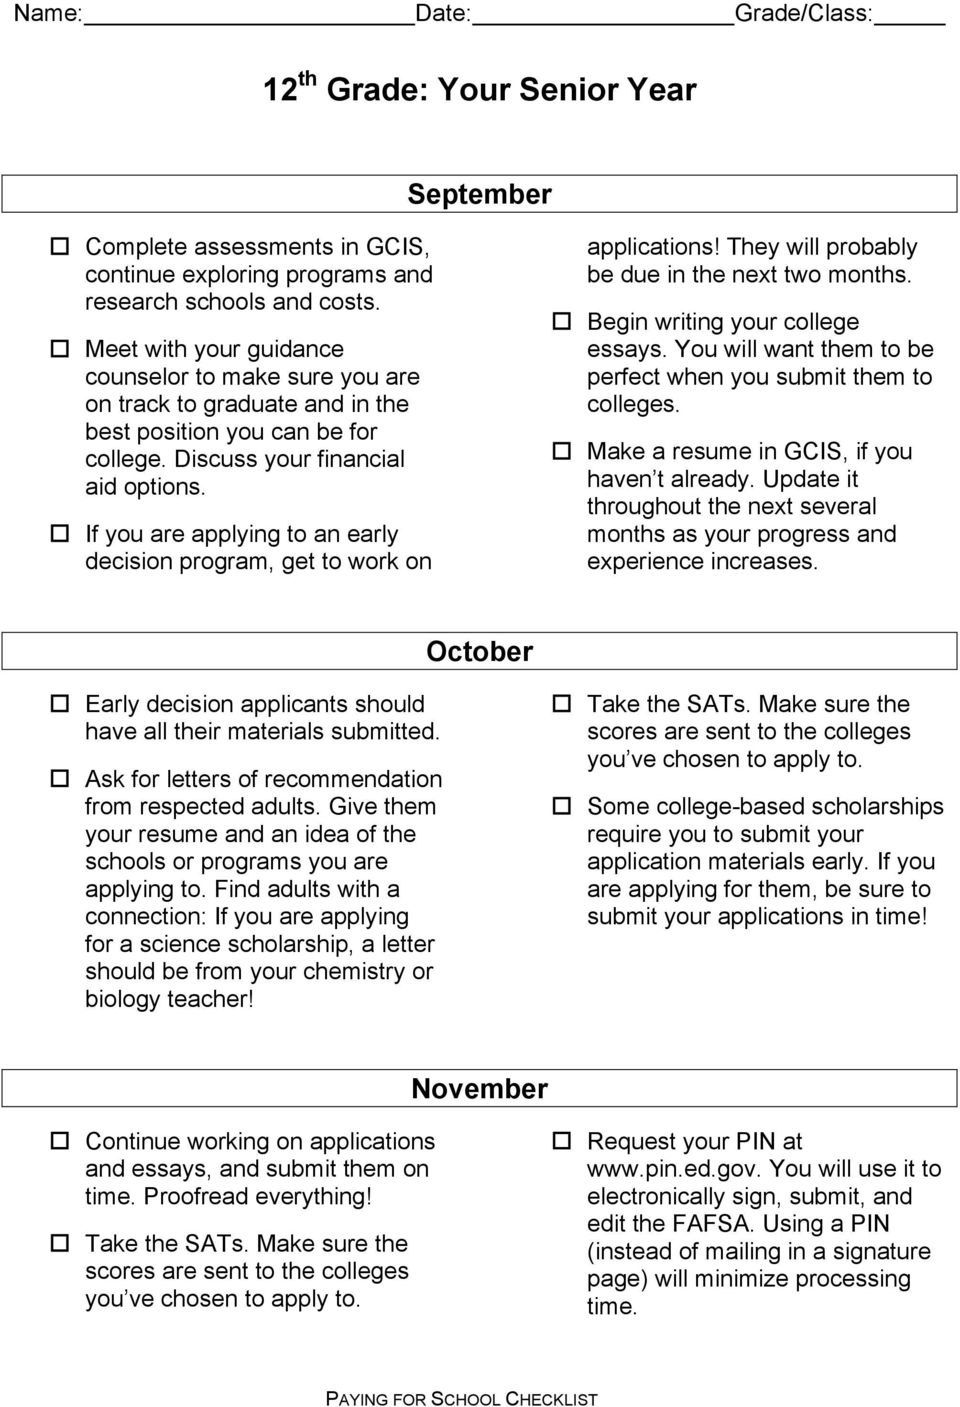 If you are applying to an early decision program, get to work on applications! They will probably be due in the next two months. Begin writing your college essays.